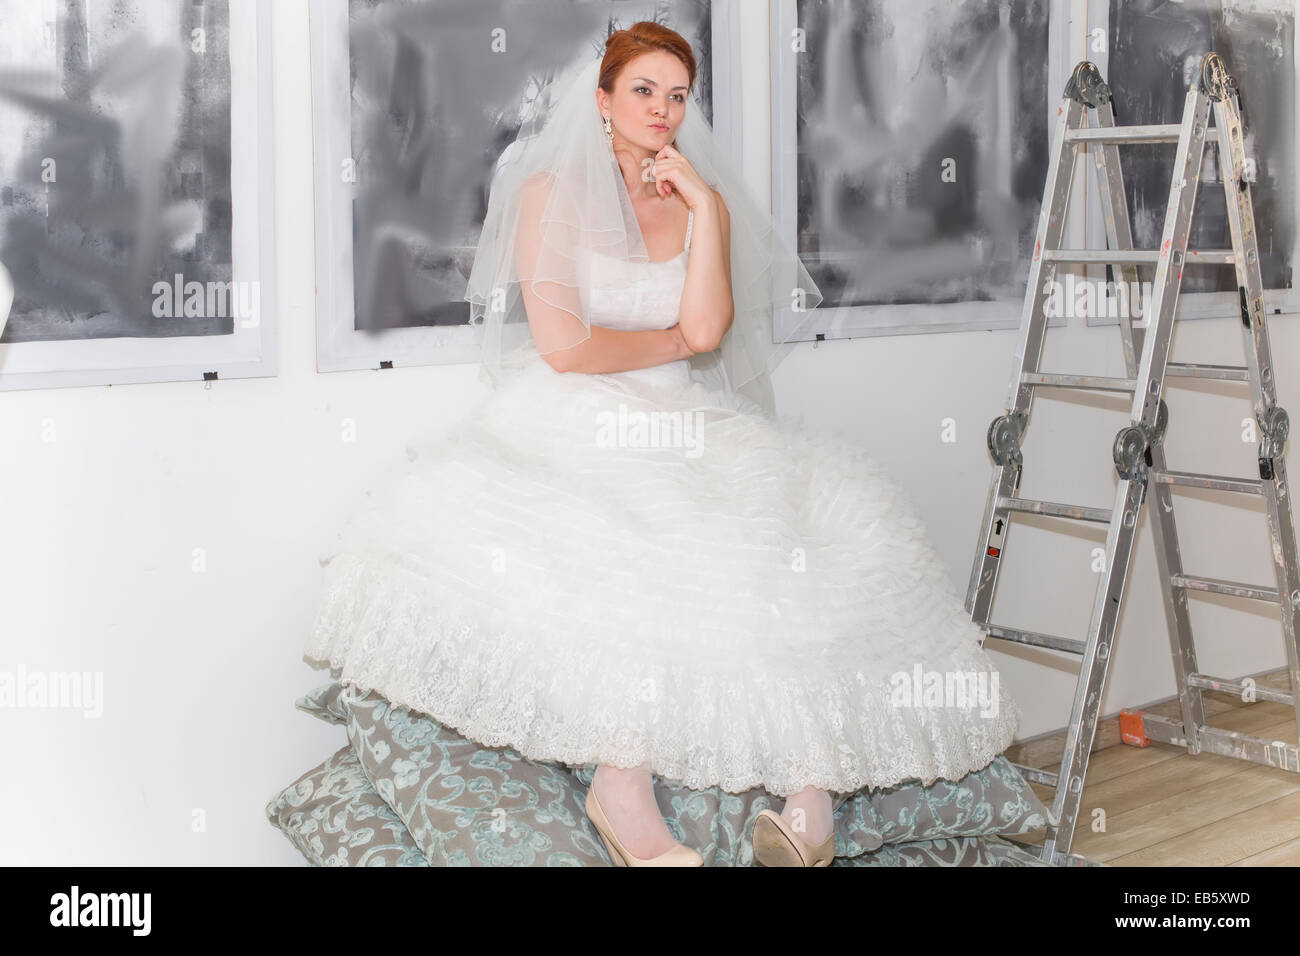 Bride in the artist sat on pillows and lost in thought - Stock Image